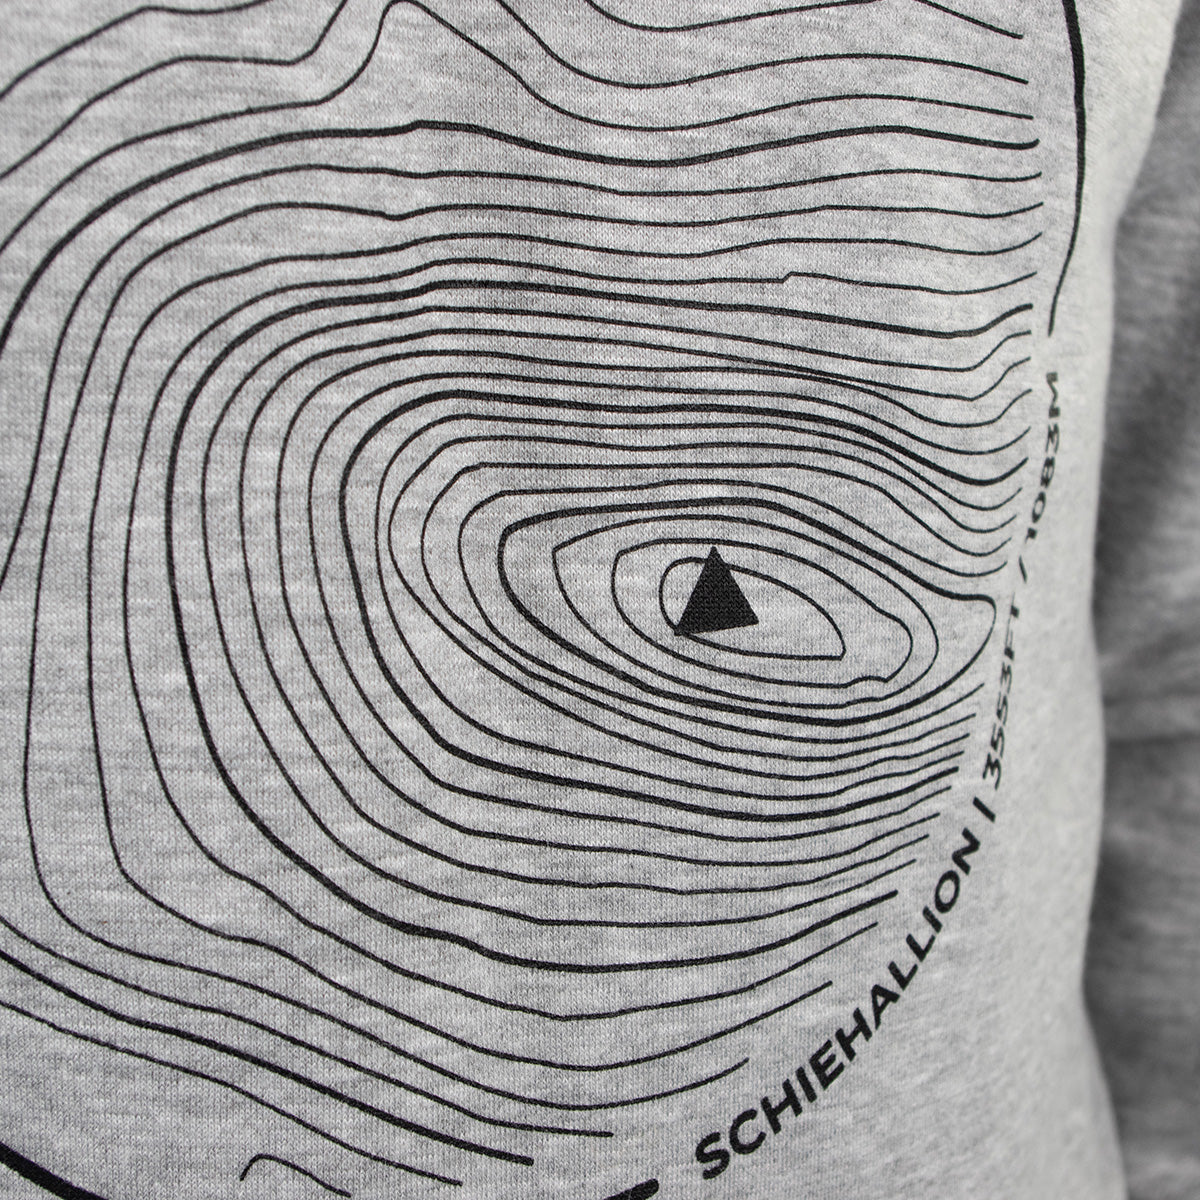 'Schiehallion' Sweatshirt